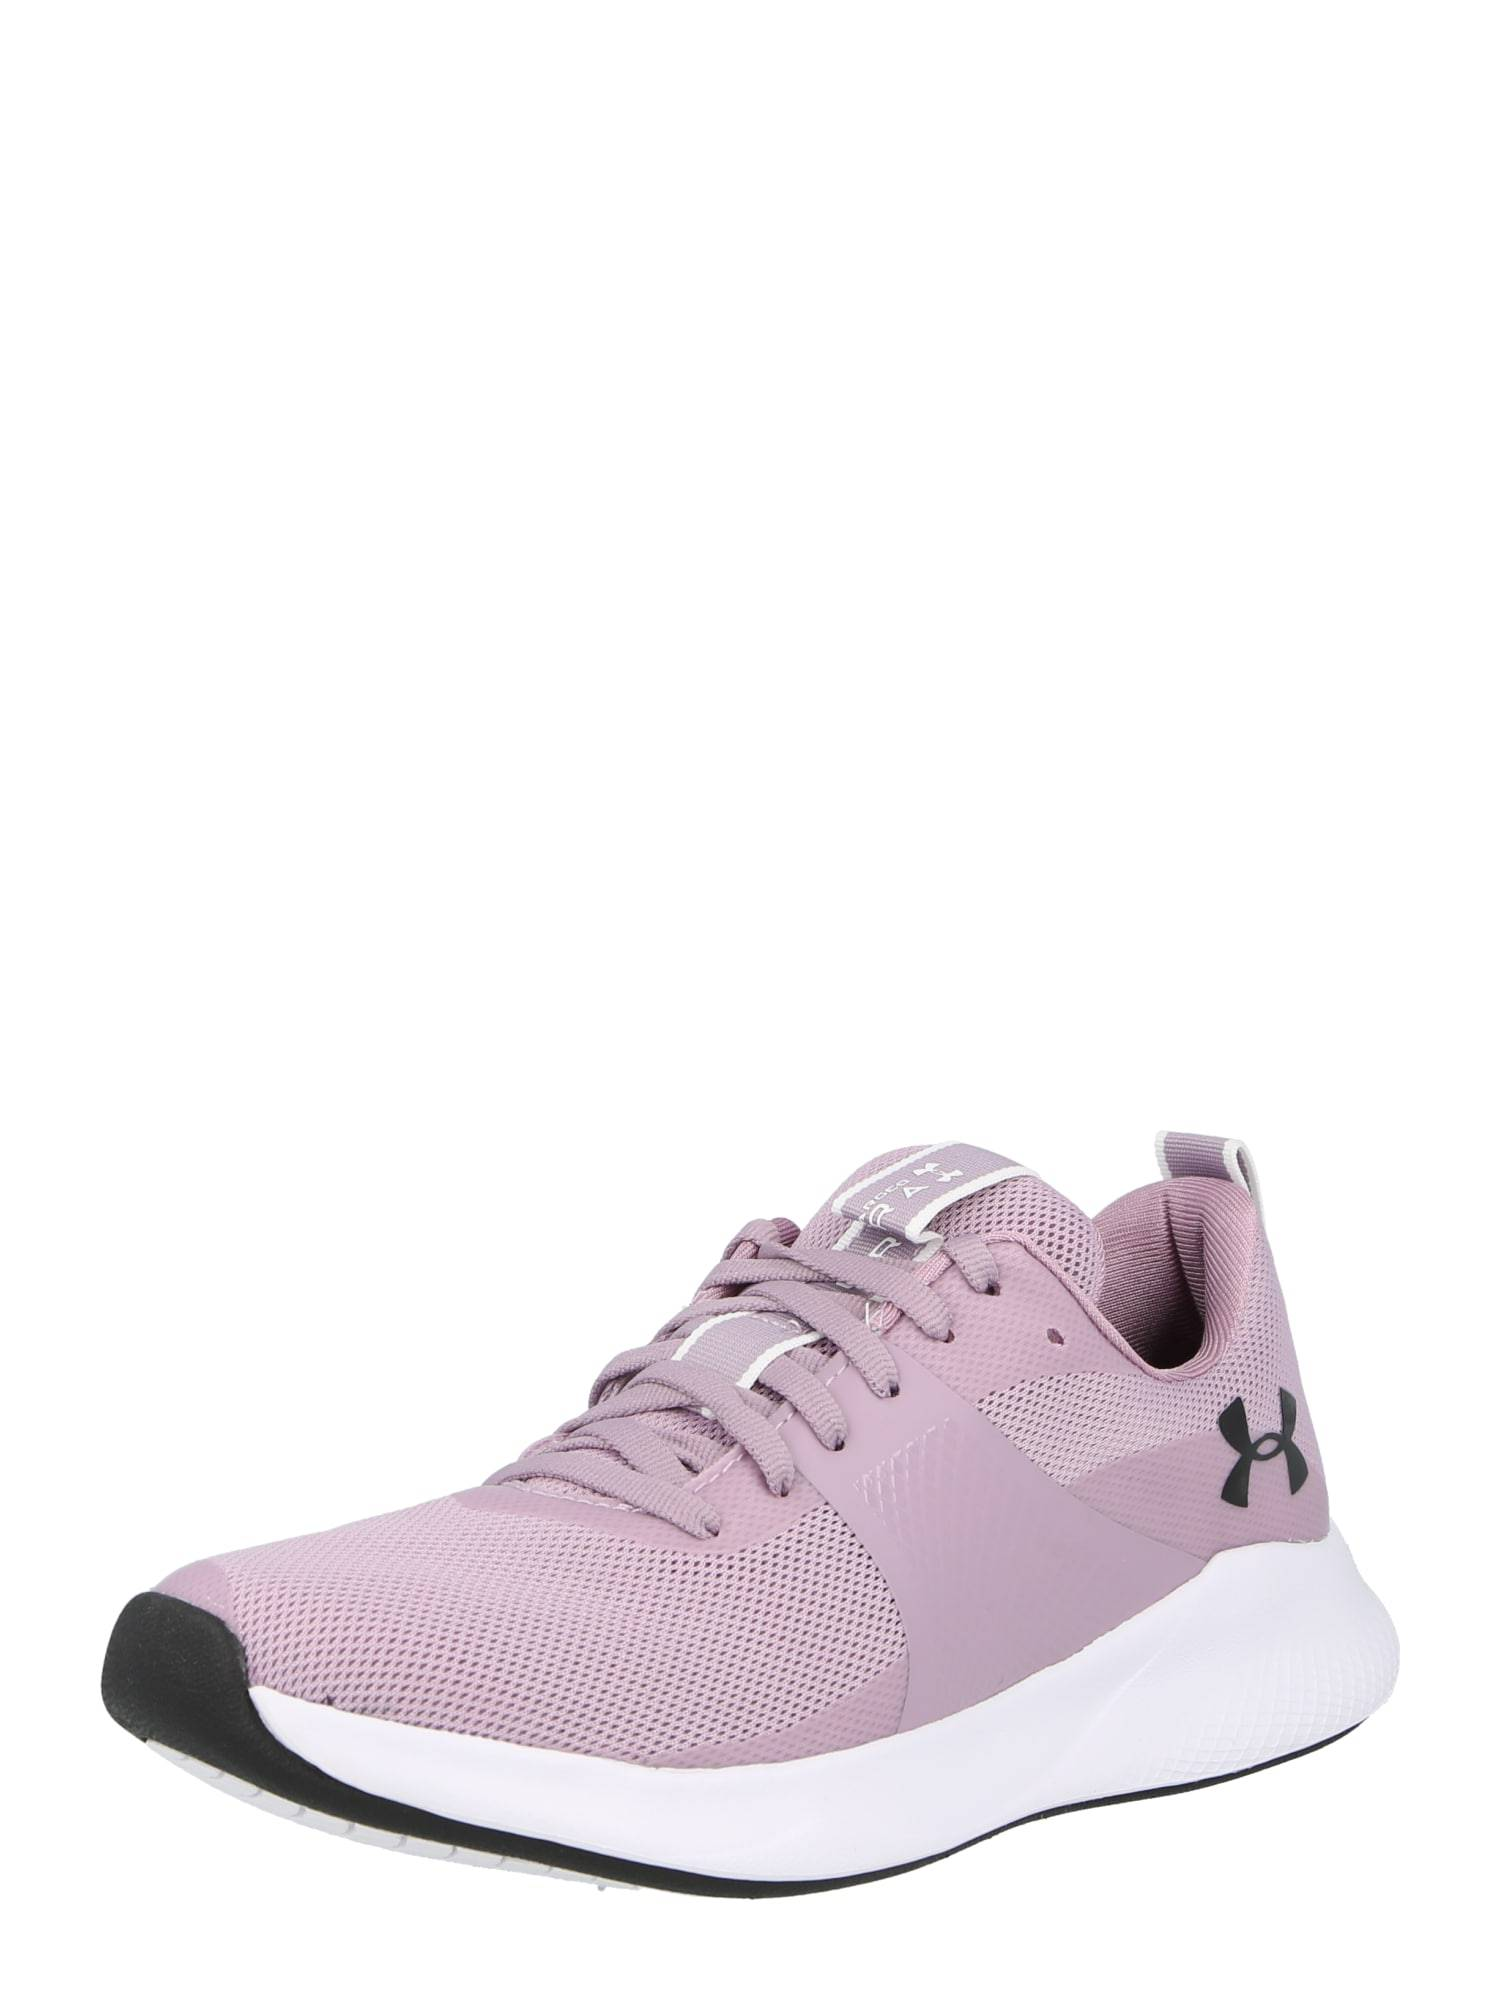 UNDER ARMOUR Chaussure de sport 'Charged Aurora'  - Rose - Taille: 6 - female